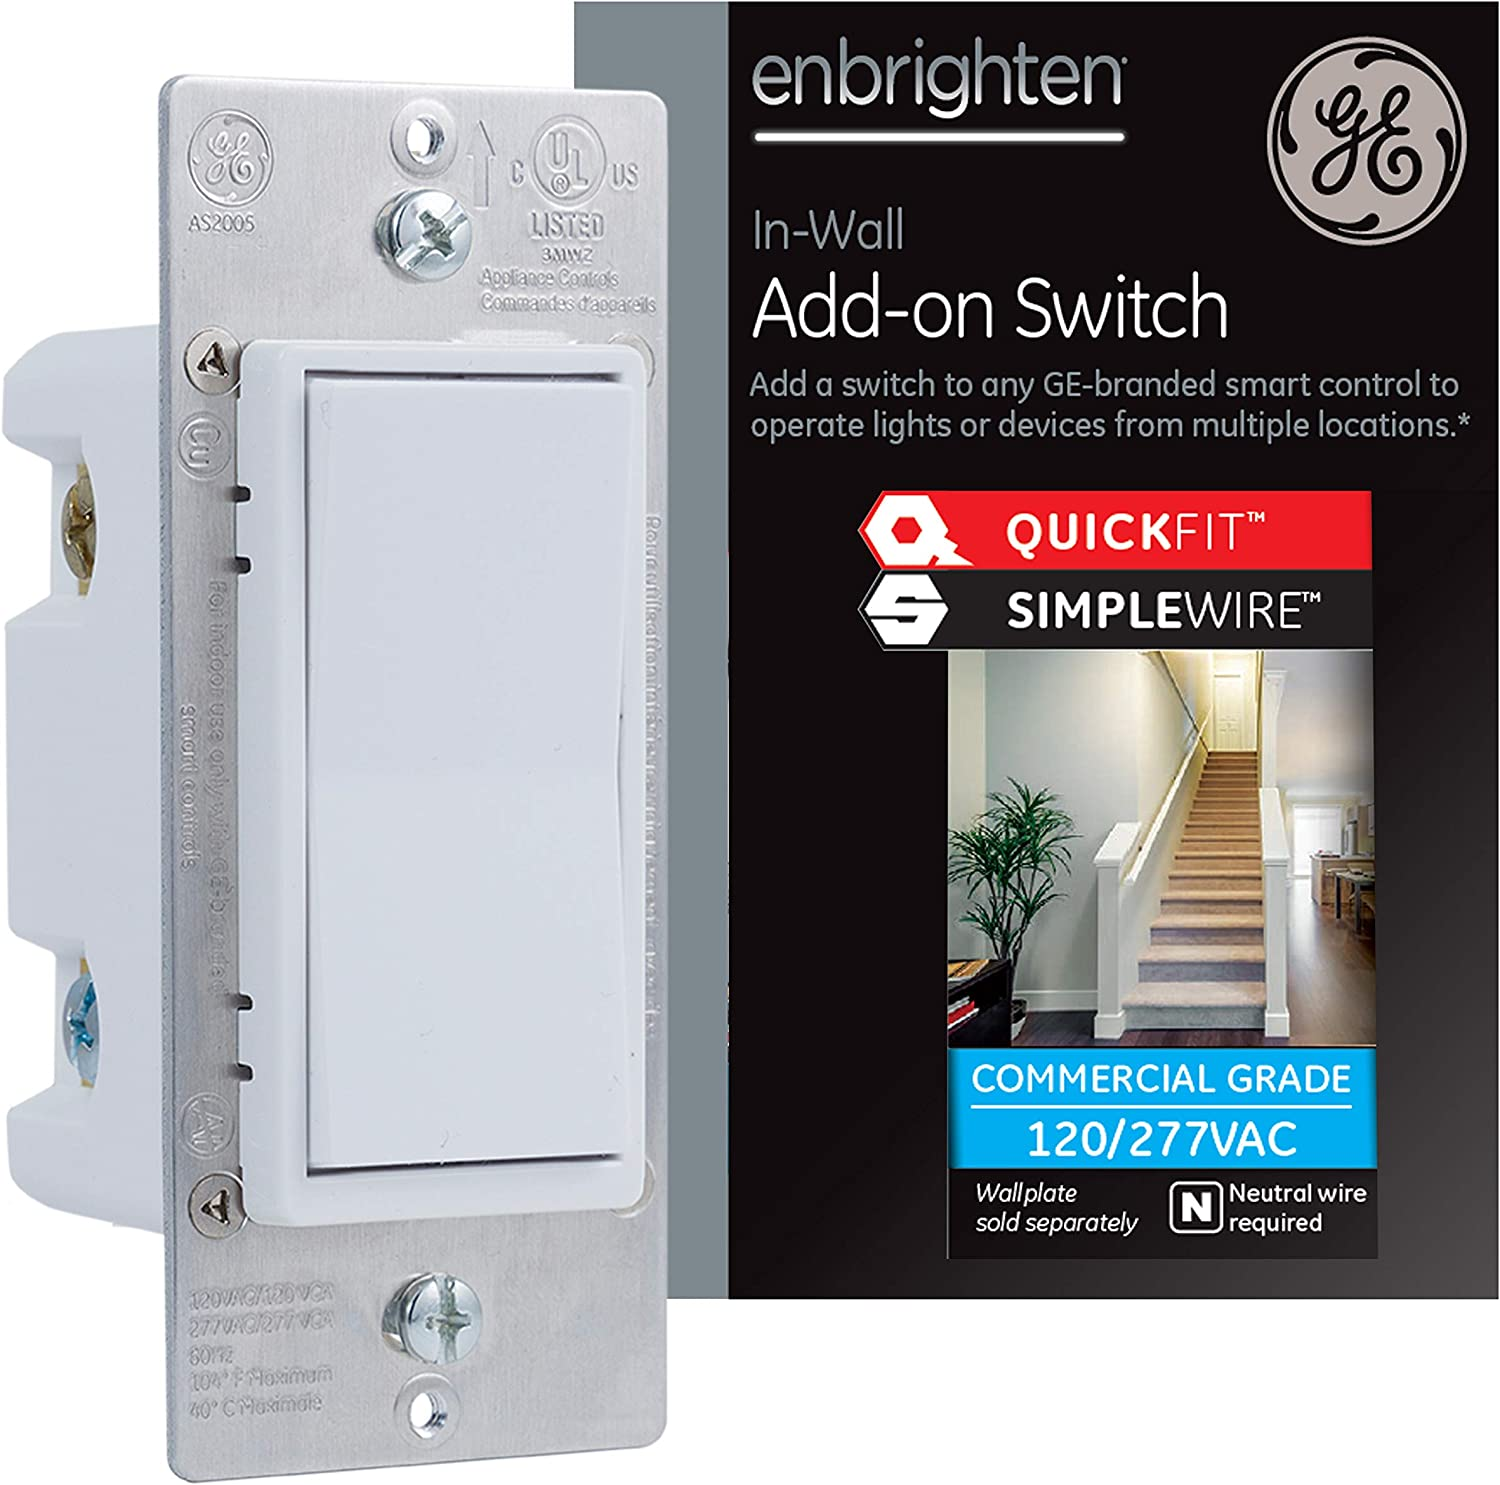 GE Enbrighten Add-On Switch with QuickFit and SimpleWire, GE Z-Wave/GE Zigbee Smart Lighting Controls, Works with Alexa, Google Assistant, NOT A STANDALONE SWITCH, White, 47334